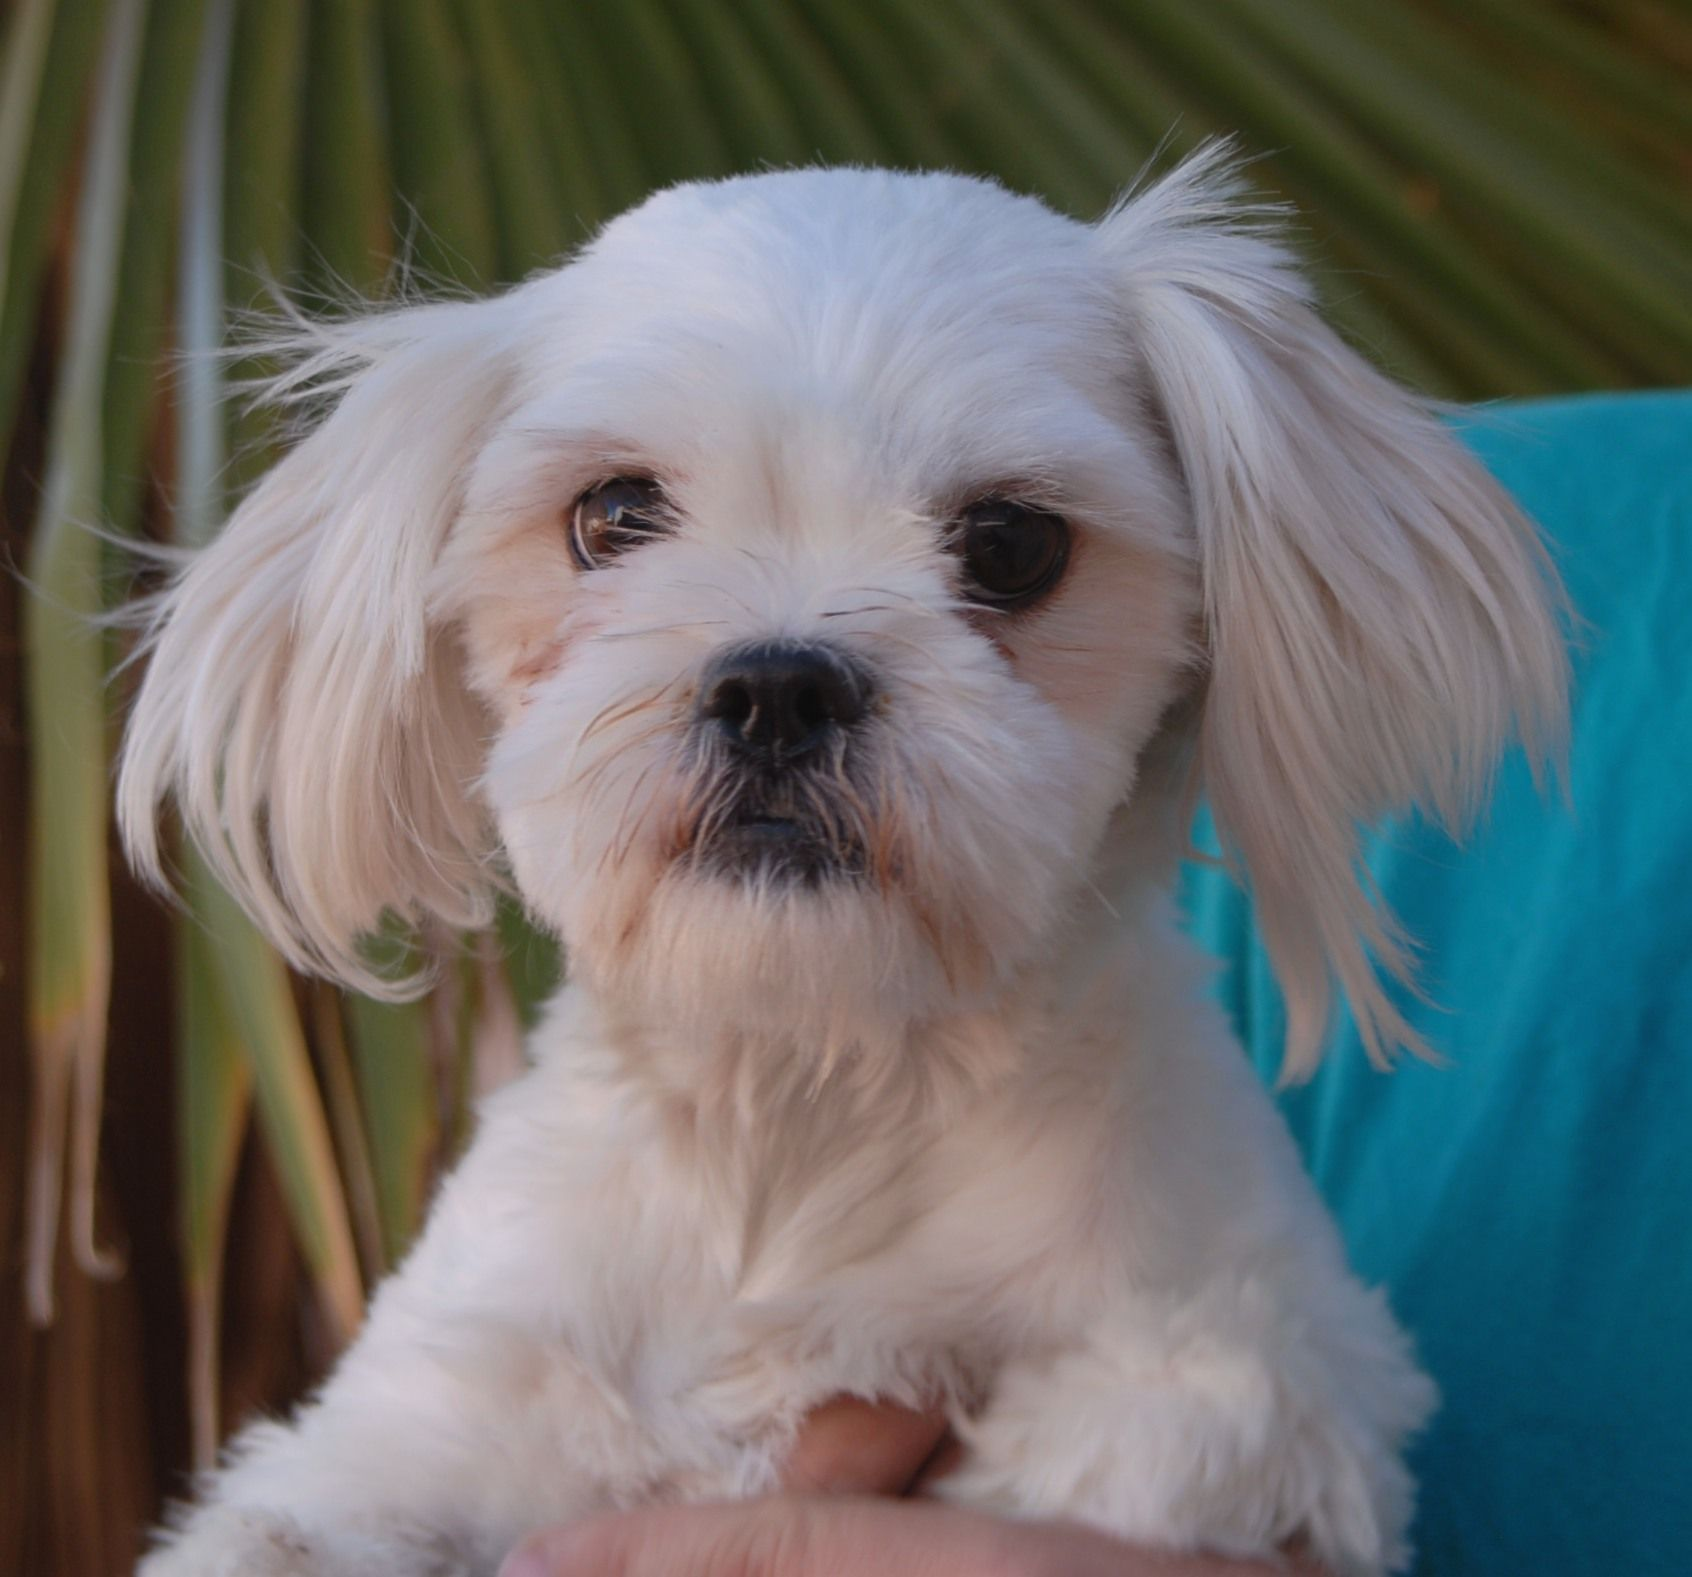 Bridgette Is A Bashful Junior Puppy Longing For Stability And Routine She Is A Maltese Shih Tzu Mix 10 Months O Dog Adoption Dog Potty Training Sweet Dogs